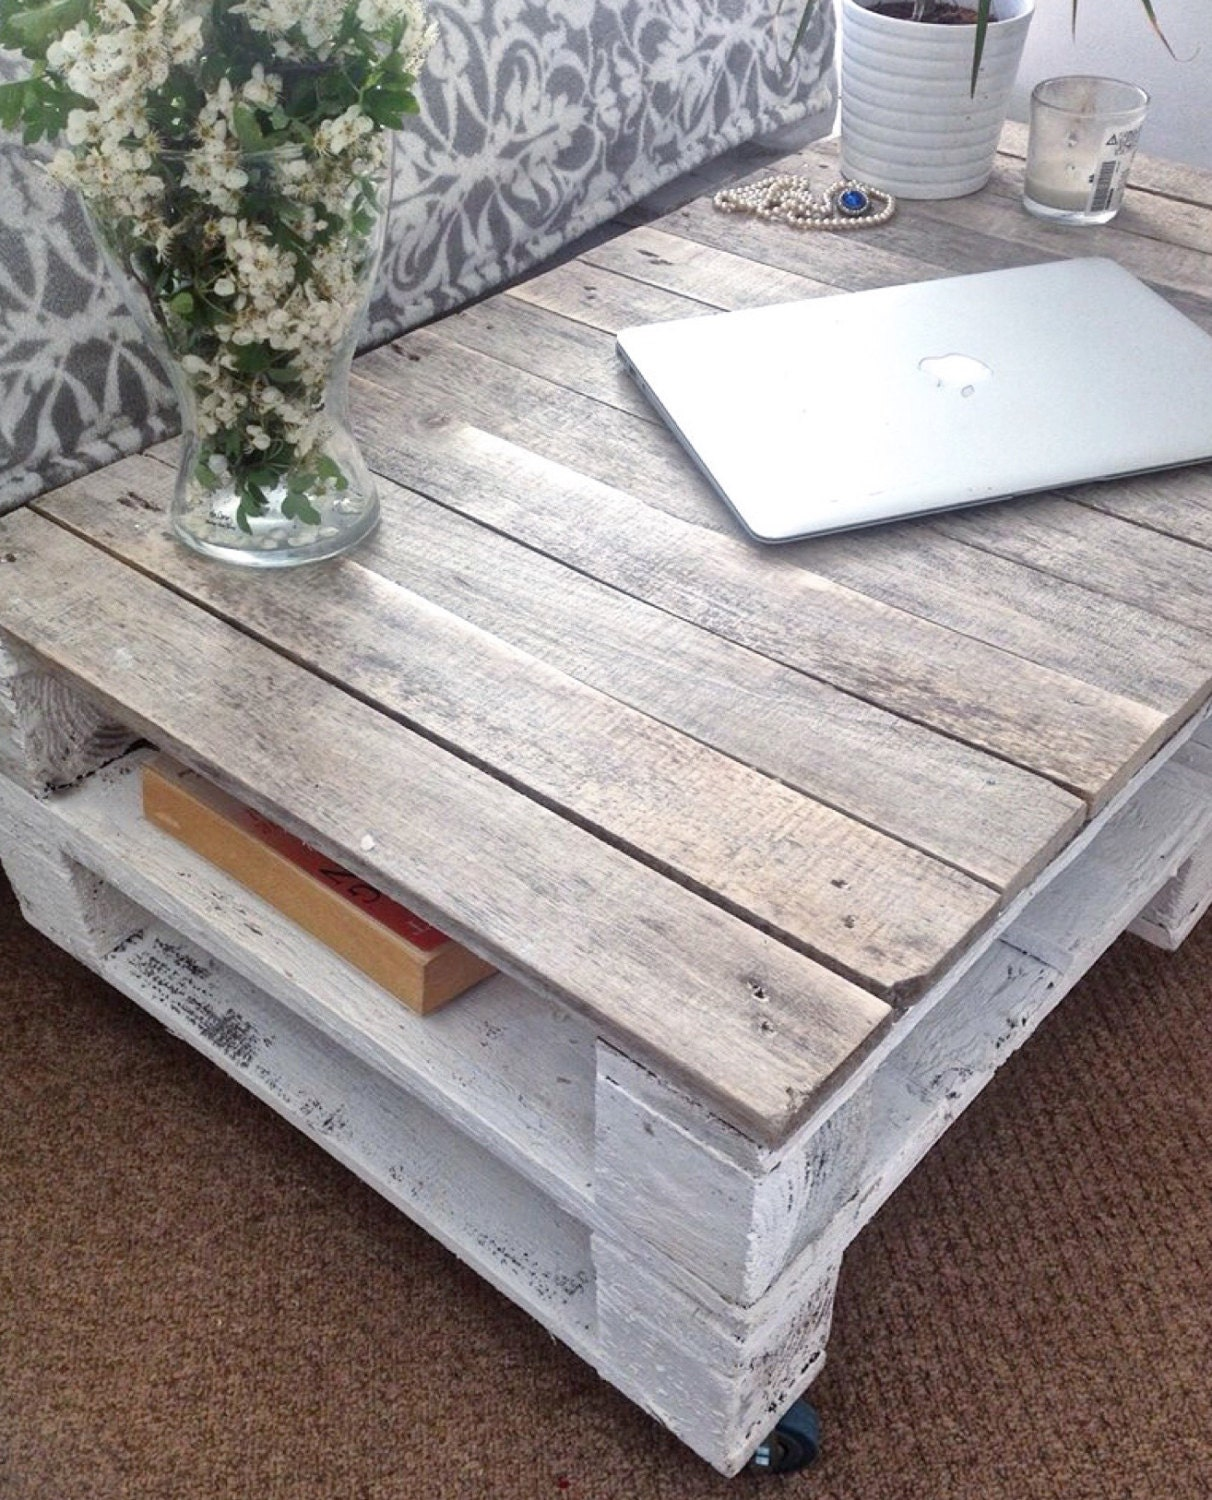 Diy Shabby Chic Coffee Table: Pallet Coffee Table ESMA In Farmhouse Style With Castor Wheels